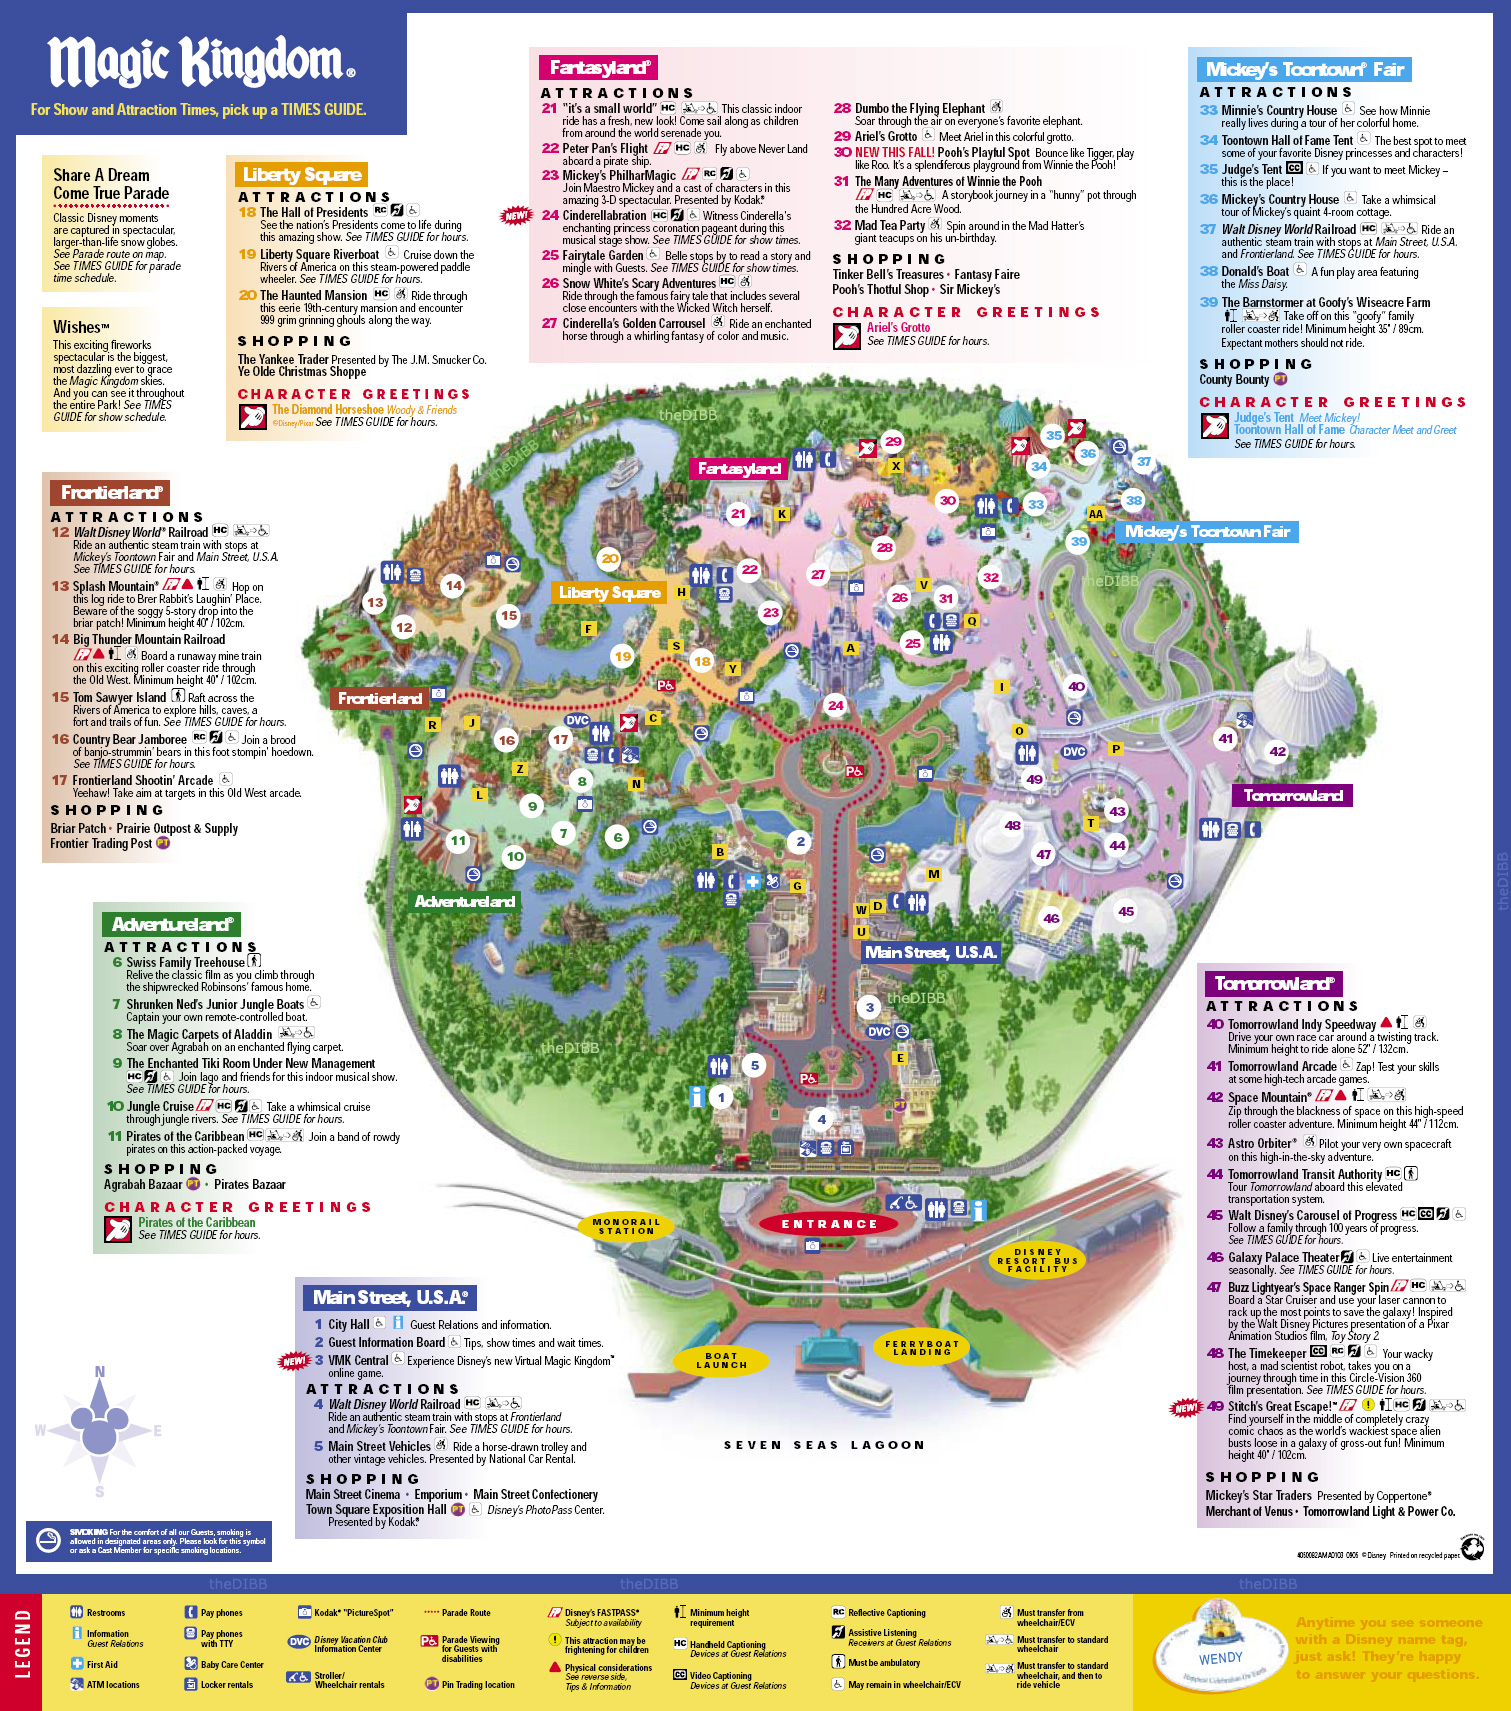 photograph relating to Magic Kingdom Printable Map named Disneys Magic Kingdom Map - Disney039s Magic Kingdom Orlando